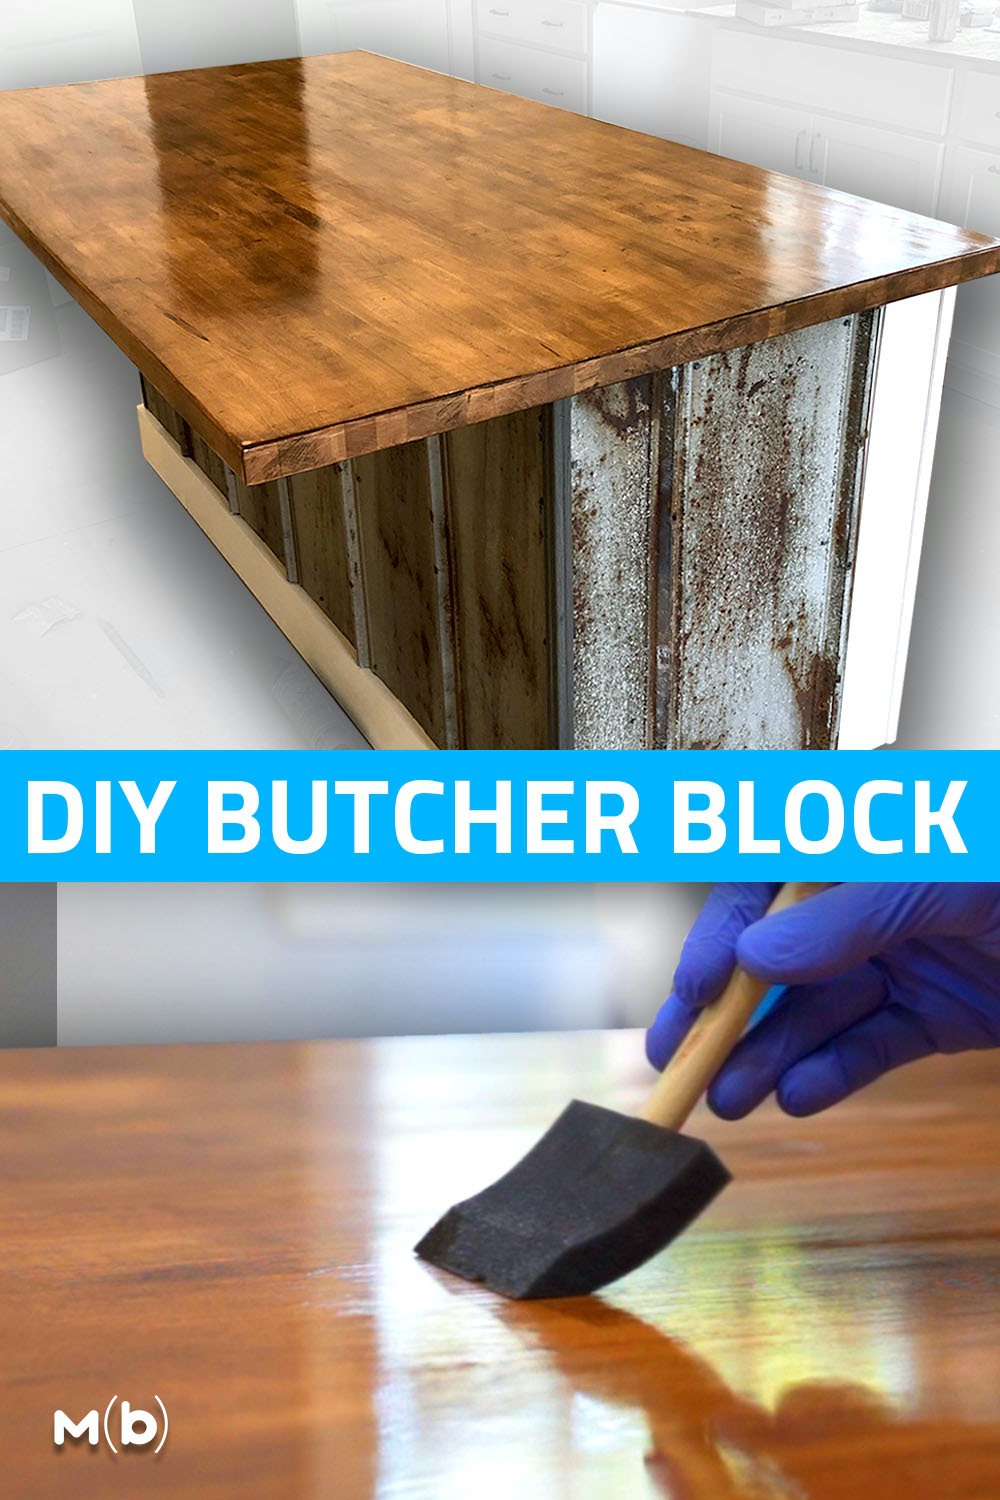 Step by step guide on how to build a butcher countertop perfect for the next kitchen or bathroom remodel. We also get into how to stain the wood to match! #woodworking #DIY